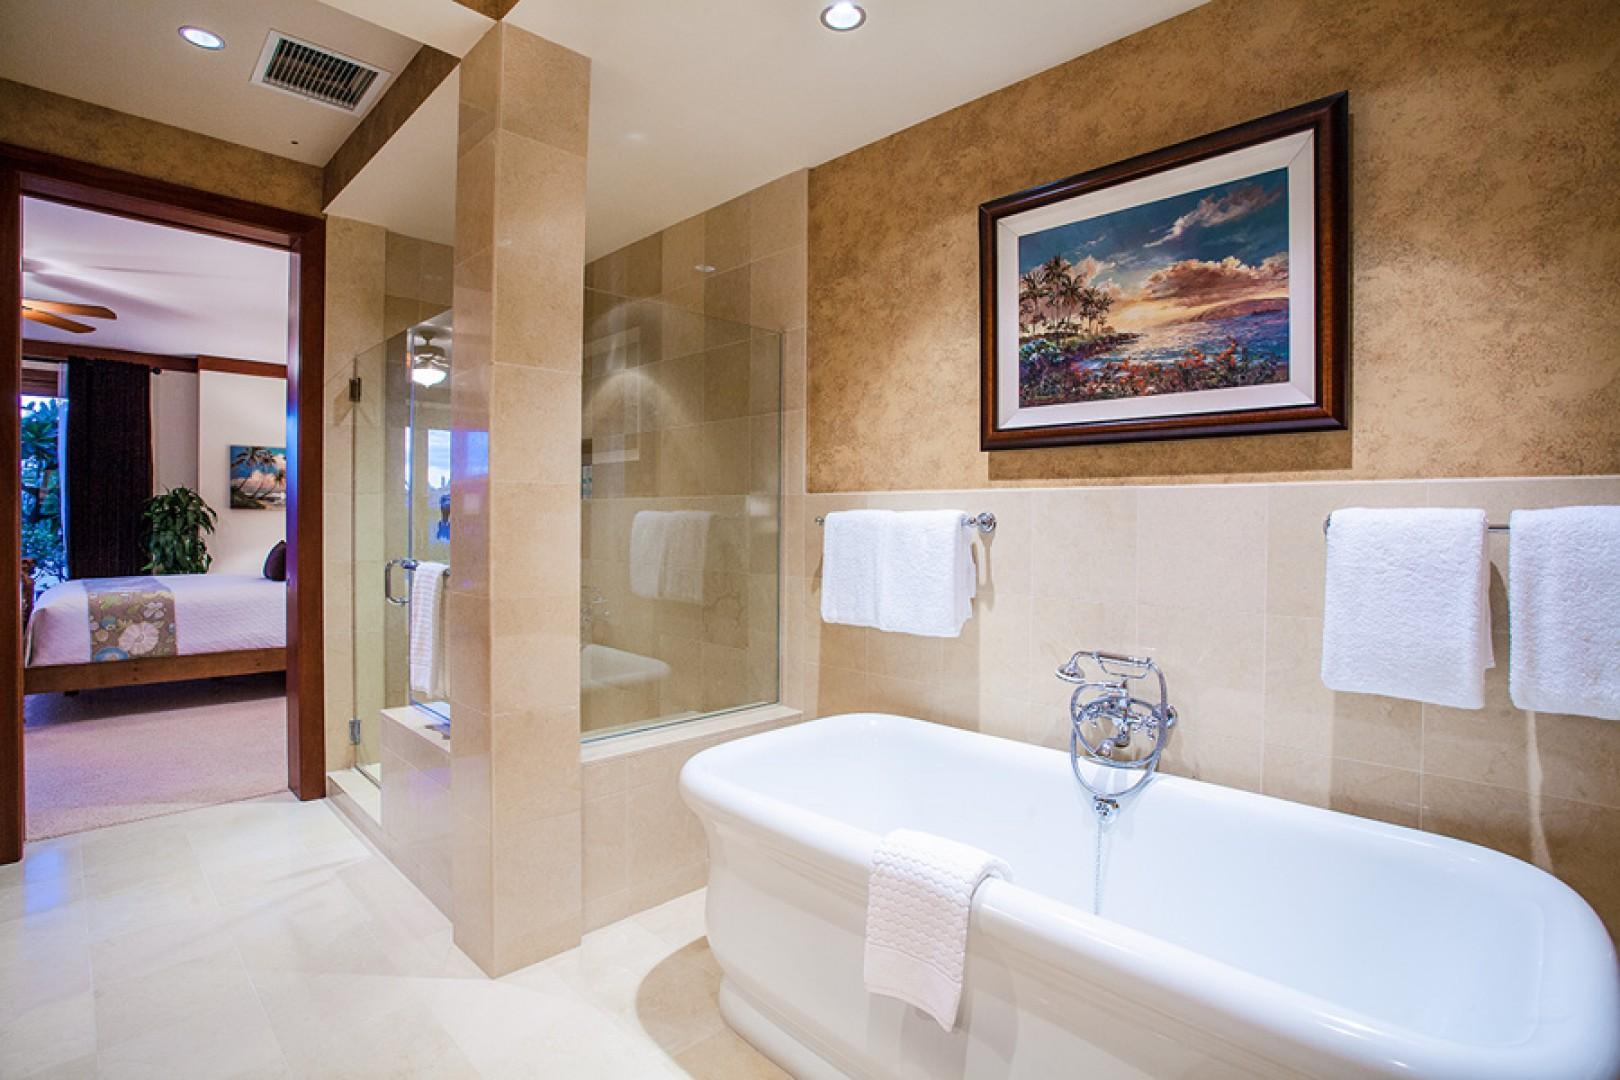 Soaking tub and separate shower in master bath.